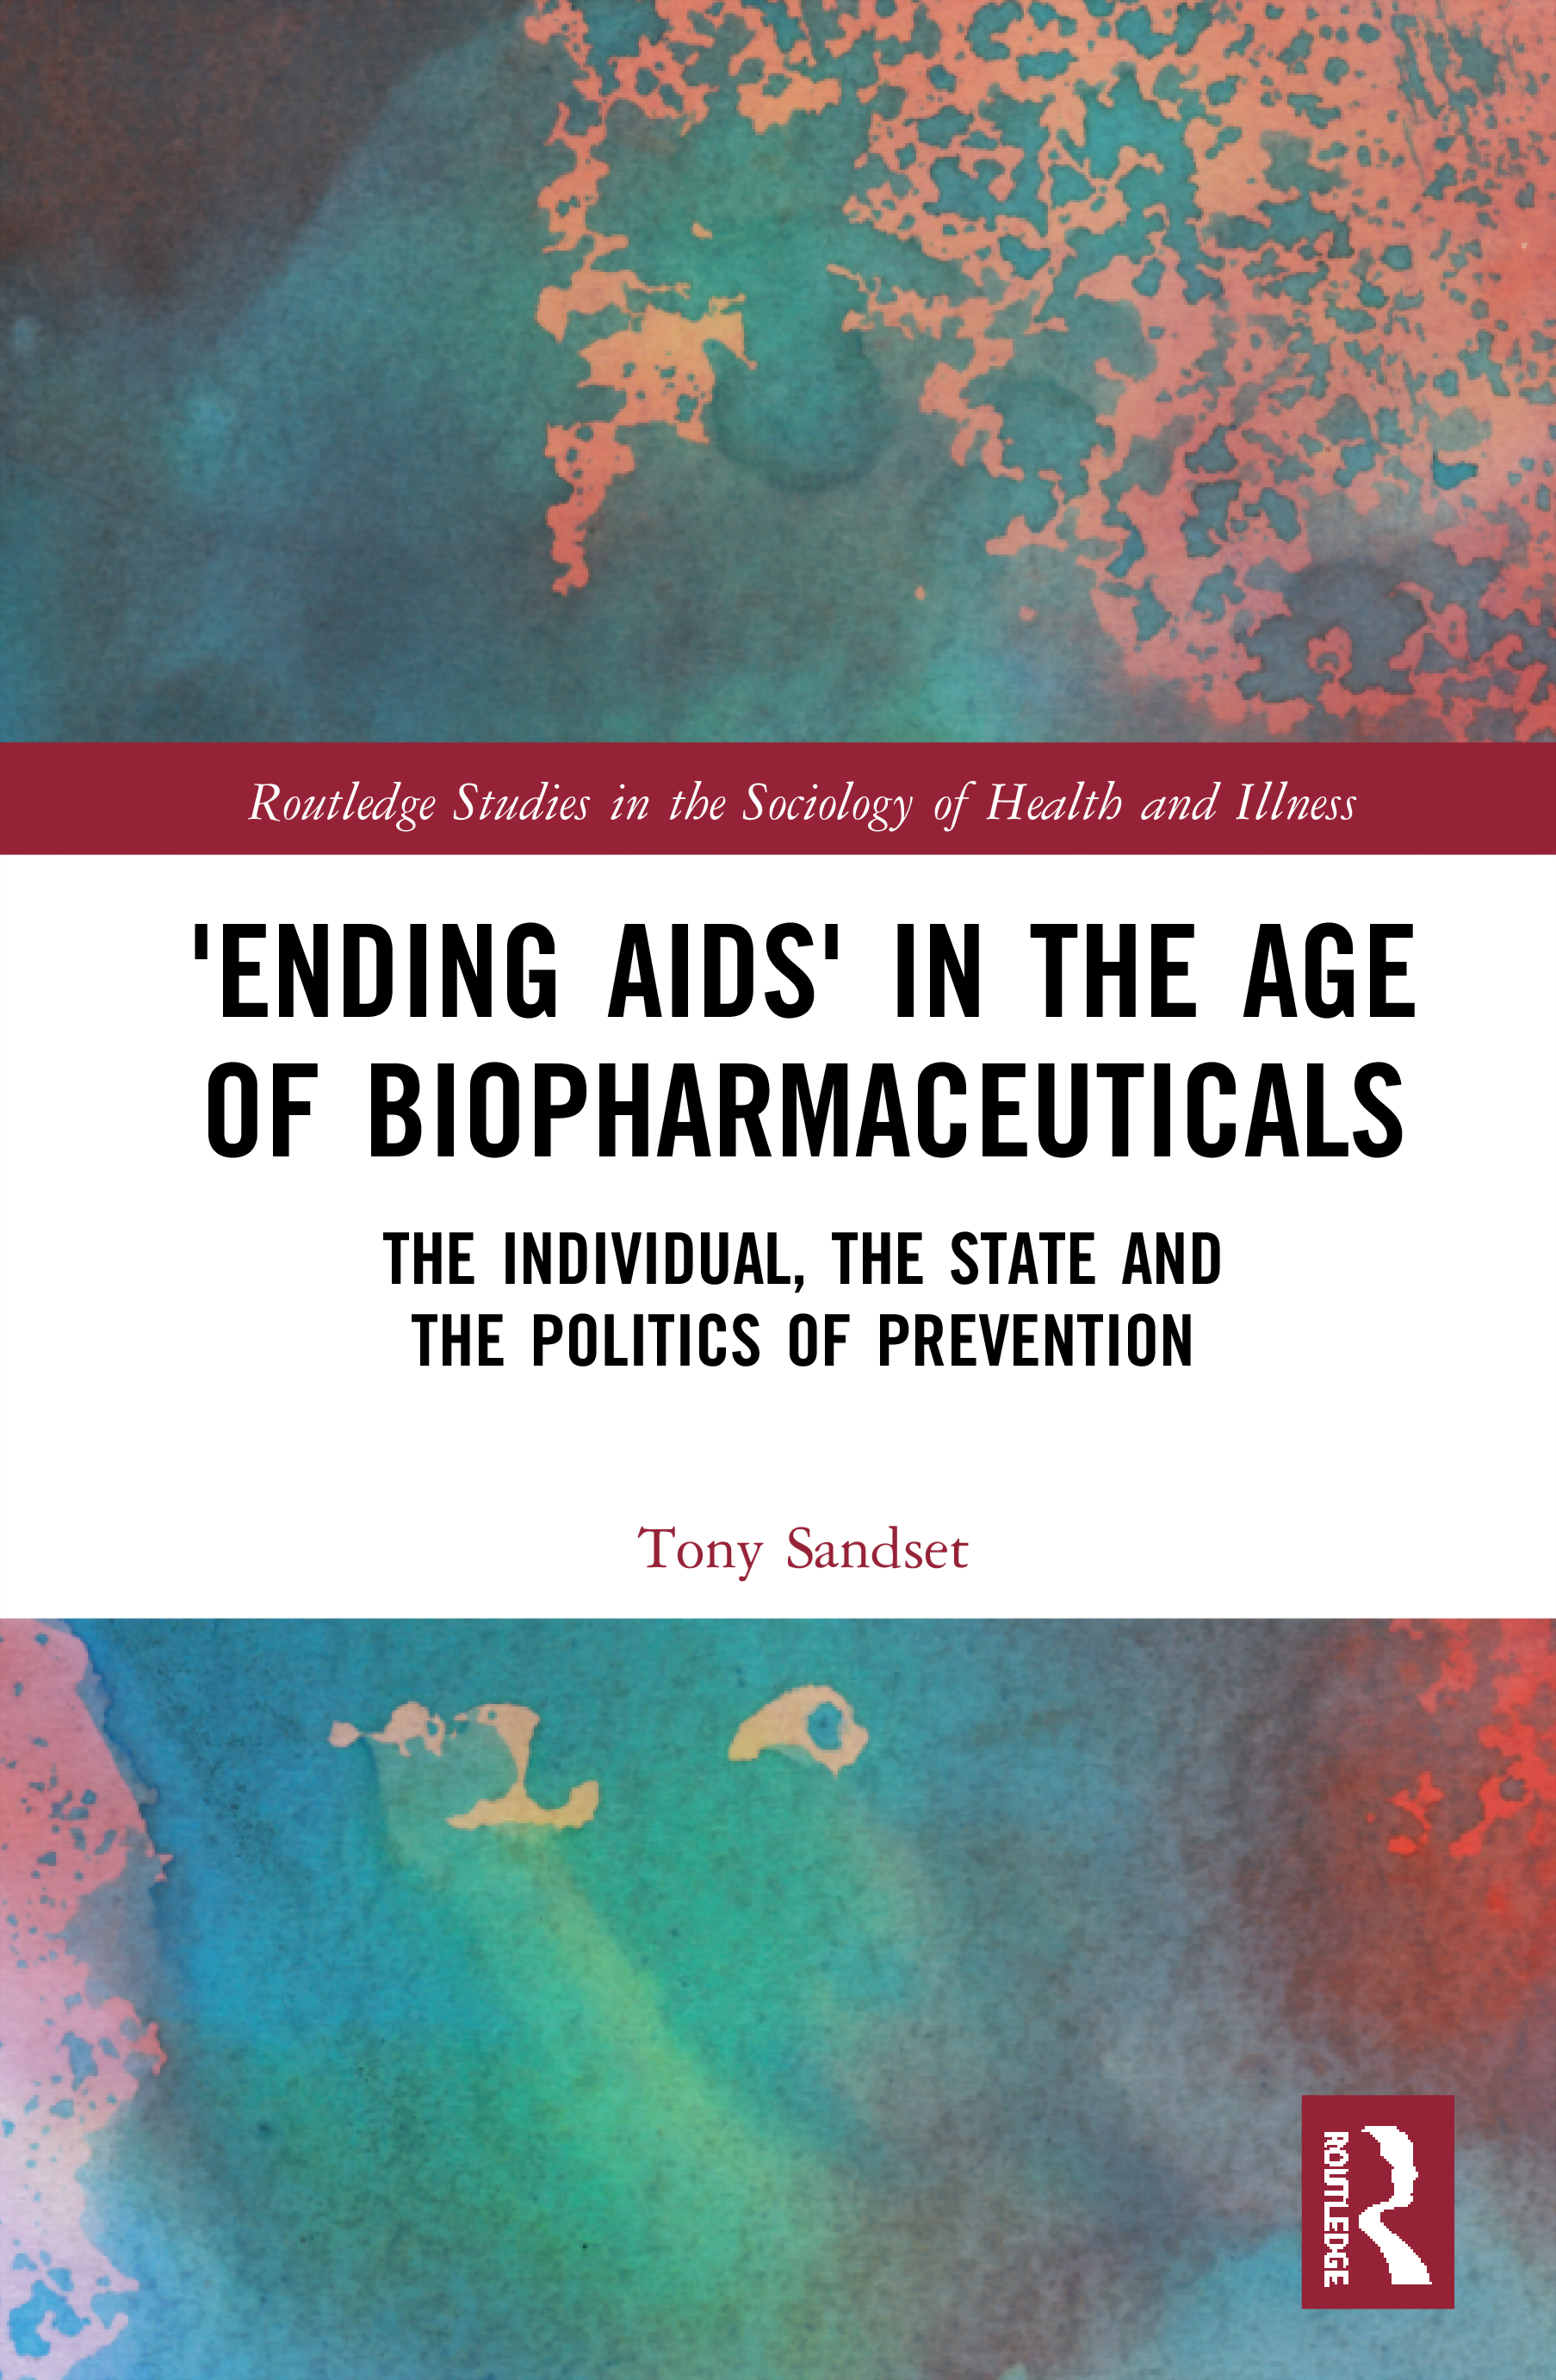 'Ending AIDS' in the Age of Biopharmaceuticals